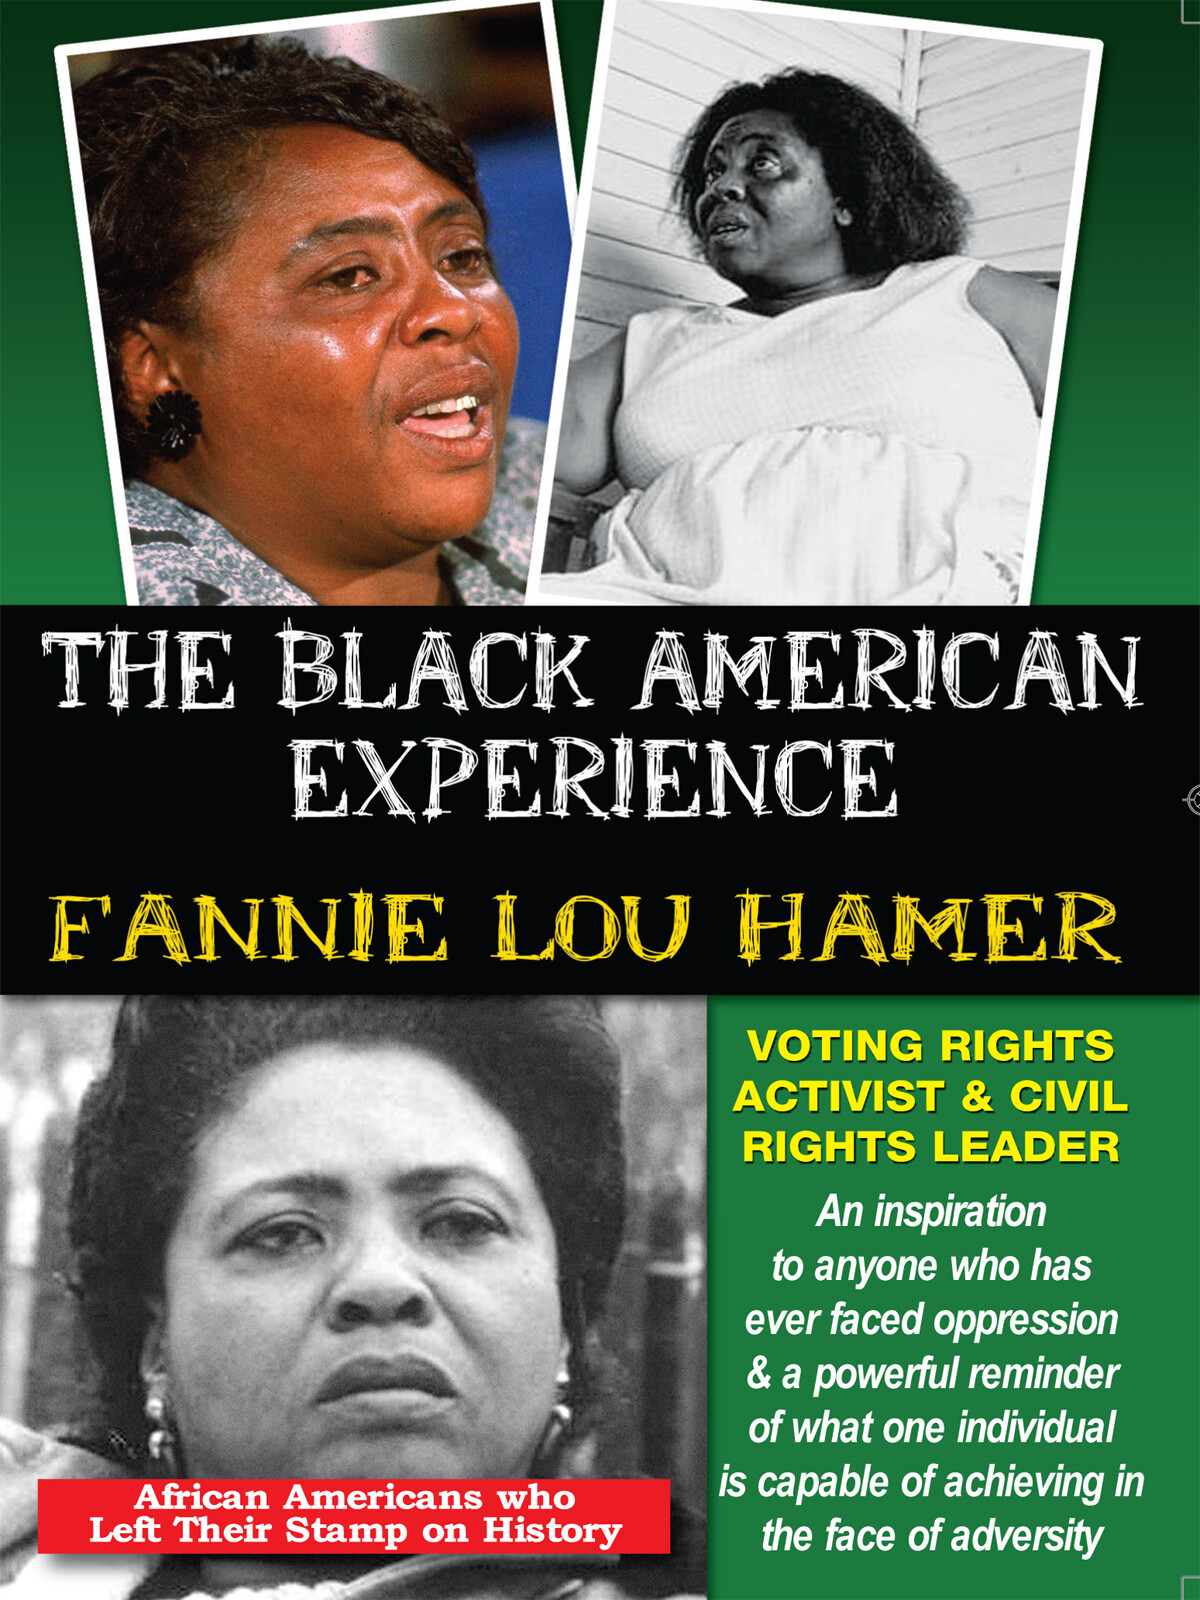 L5732 - Fannie Lou Hamer Voting Rights Activist